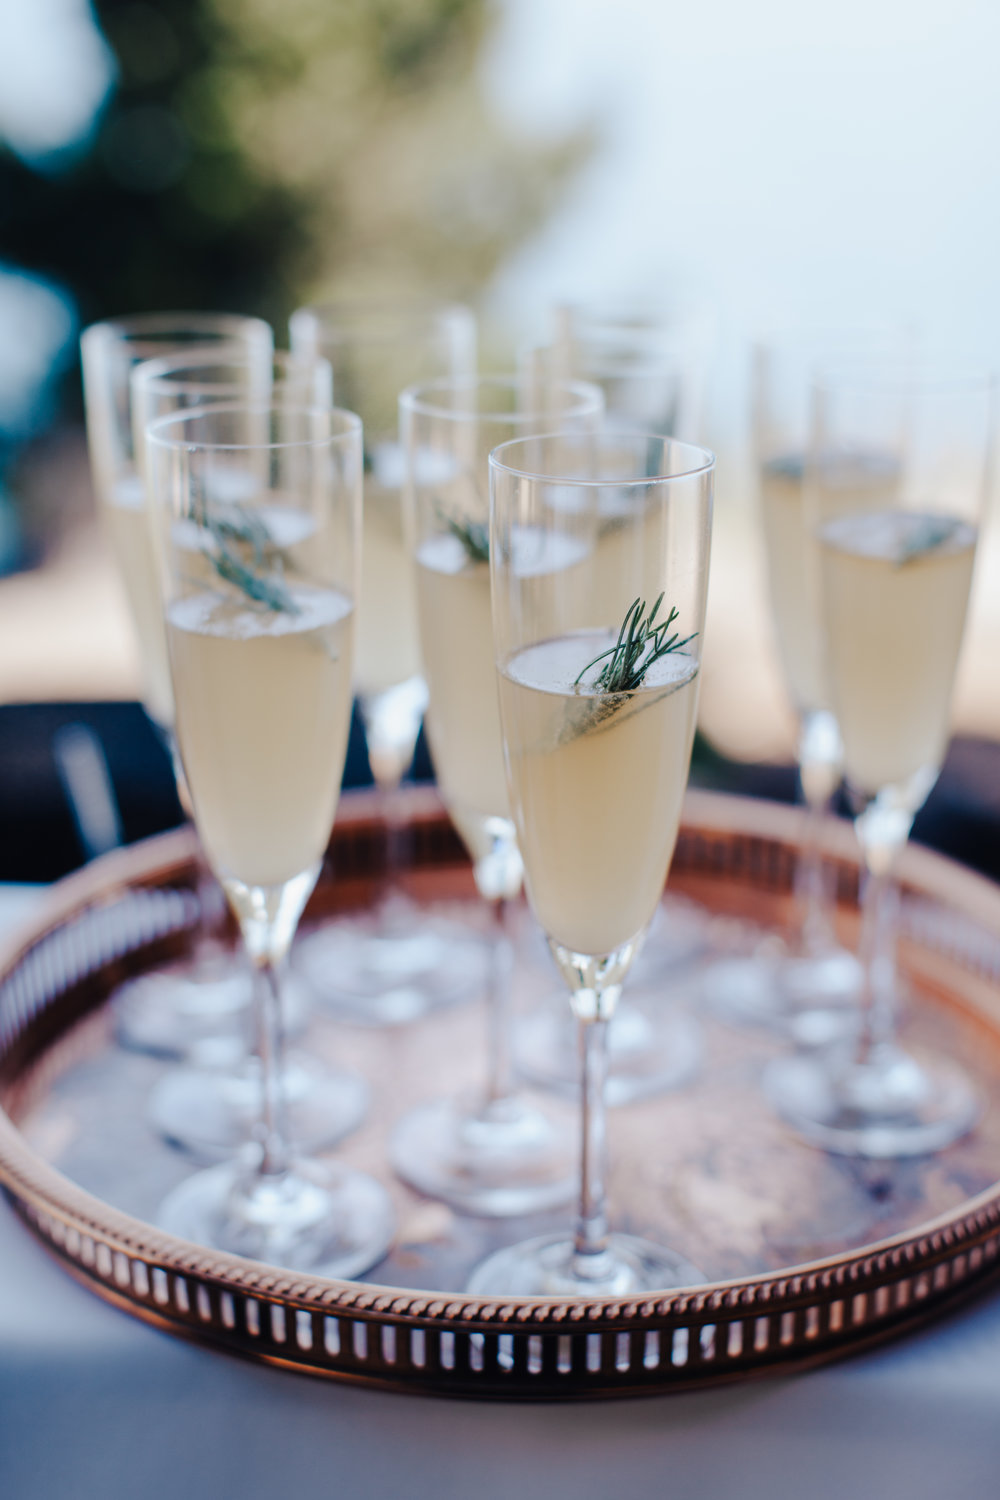 image by Evynn LeValley   GOLDEN BUBBLY   Make with or without sparkling wine.   1 oz. lemon juice  0.5 oz. simple syrup  1 tsp. your choice  GOLDEN BEAR BITTERS   SPARKLING WINE OR SPARKLING WATER  Add first 3 ingredients to a champagne flute. Top with sparkling wine or water. Cheers!